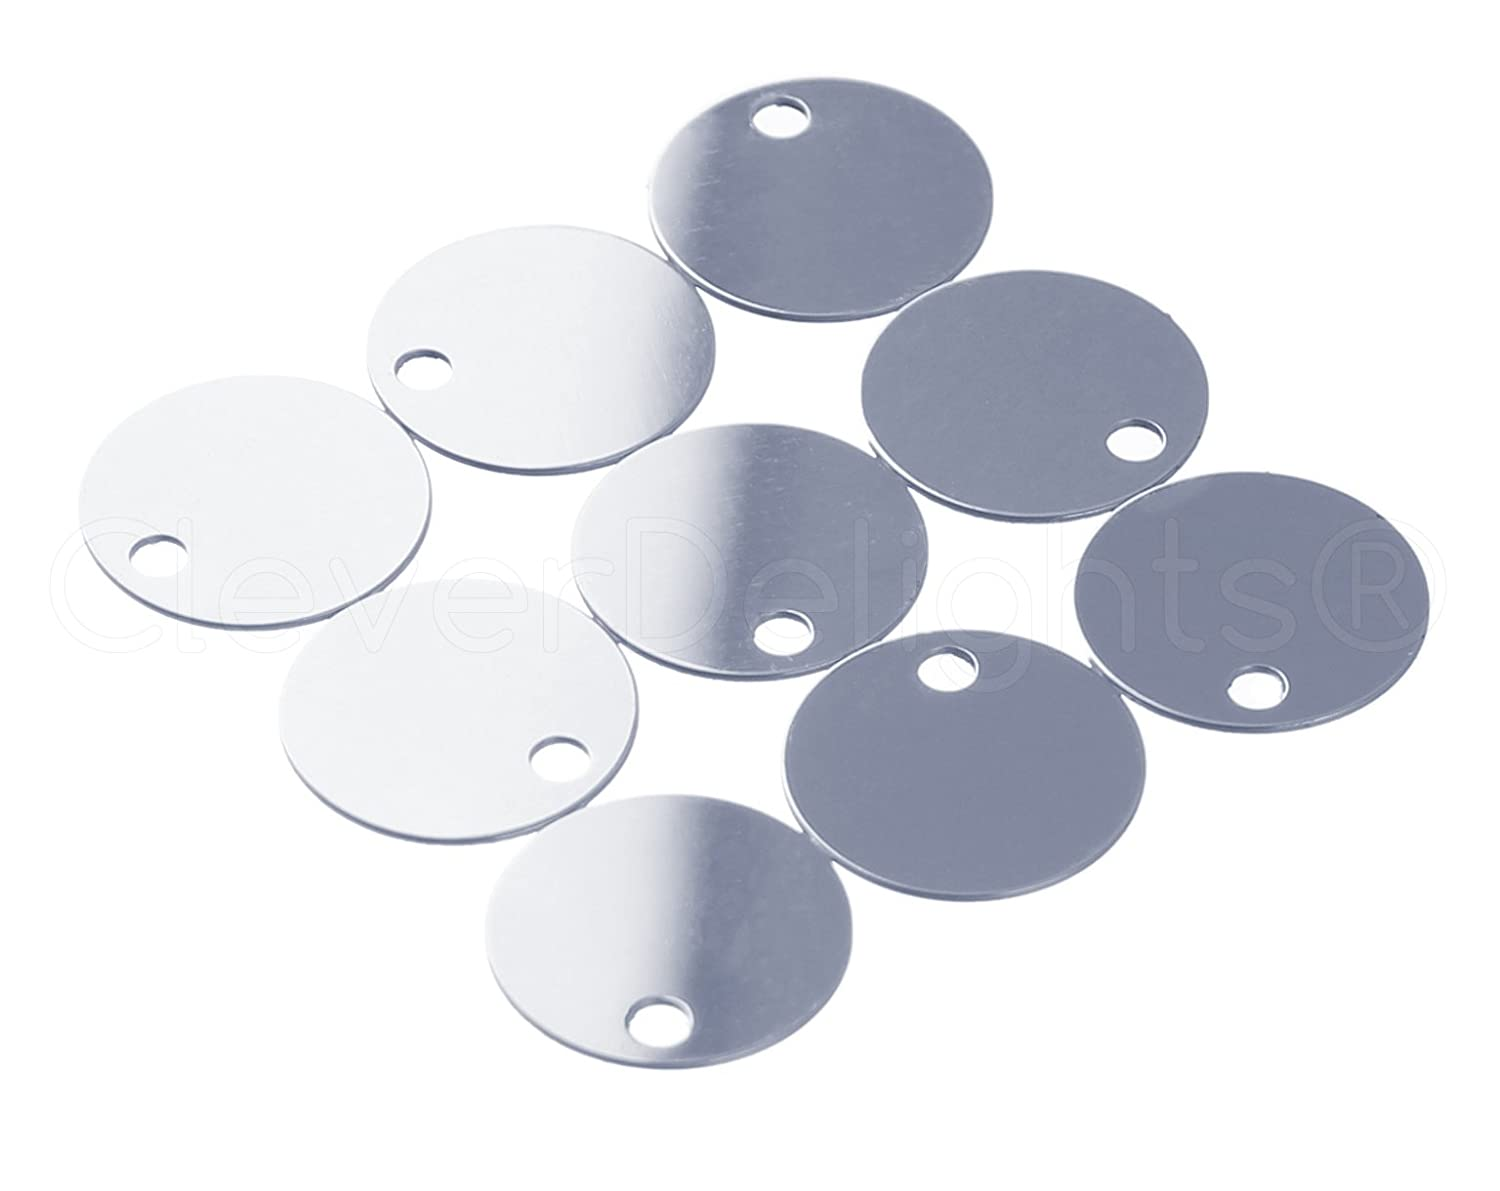 .025 Shiny Anodized Finish CleverDelights 3//4 Round Aluminum Stamping Blanks 25 Pack 22 Gauge